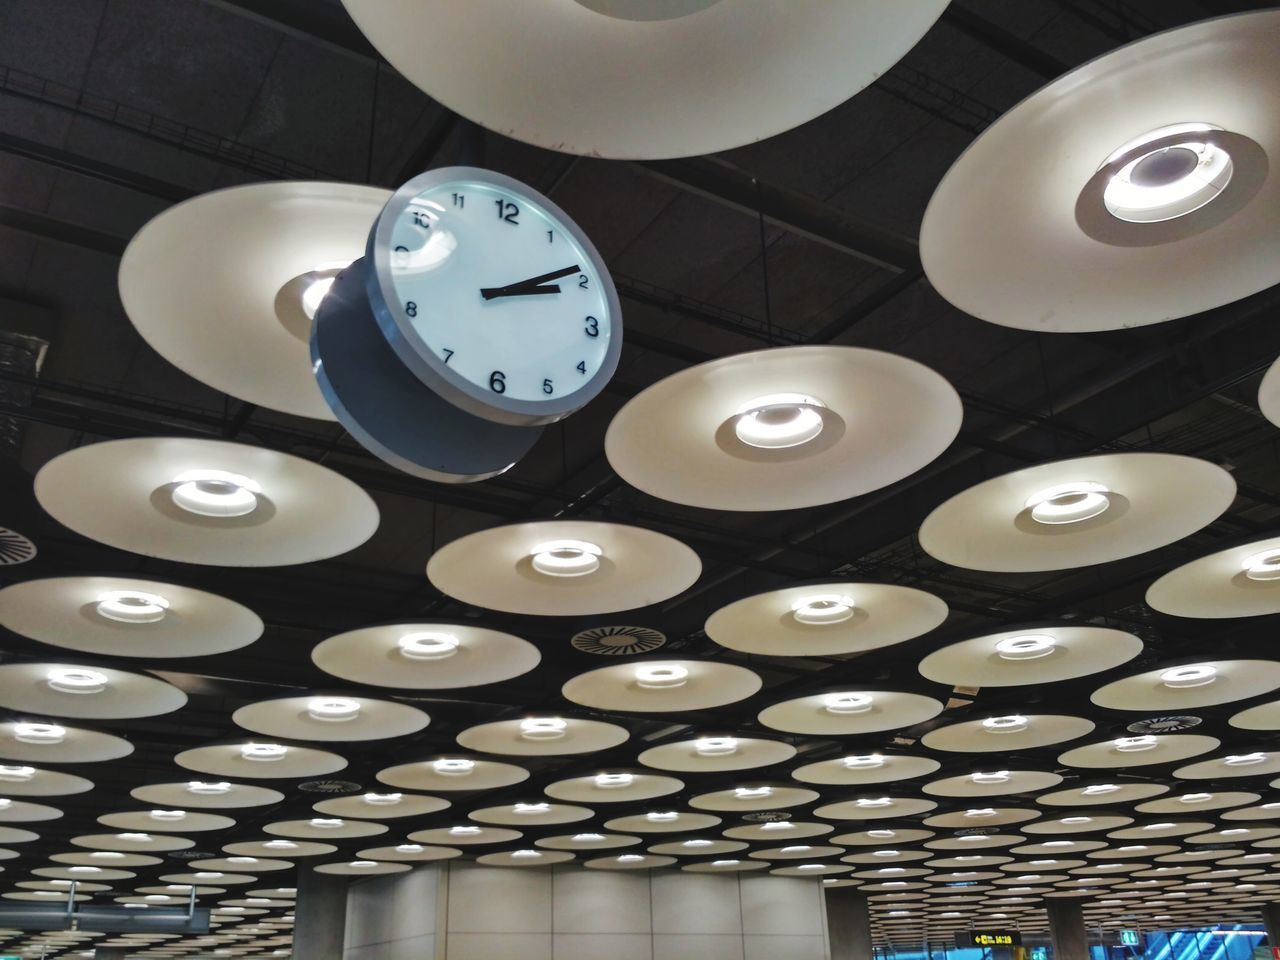 indoors, clock, time, lighting equipment, illuminated, circle, ceiling, low angle view, shape, geometric shape, hanging, no people, light, design, electricity, built structure, pendant light, architecture, electric light, wall - building feature, clock face, wall clock, electric lamp